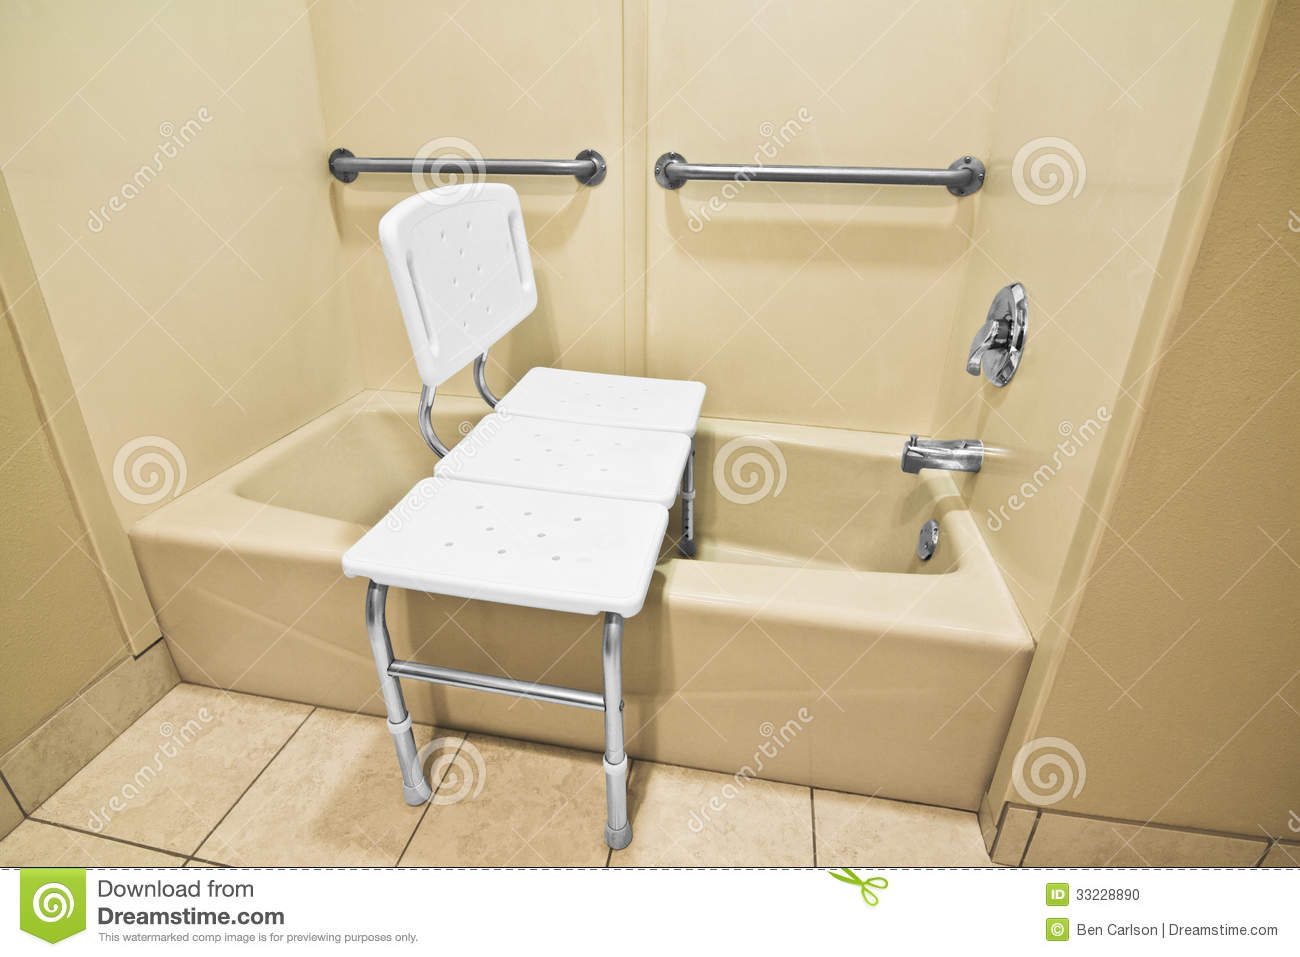 Handicap Bathing Chair Stock Photo Image Of Plastic